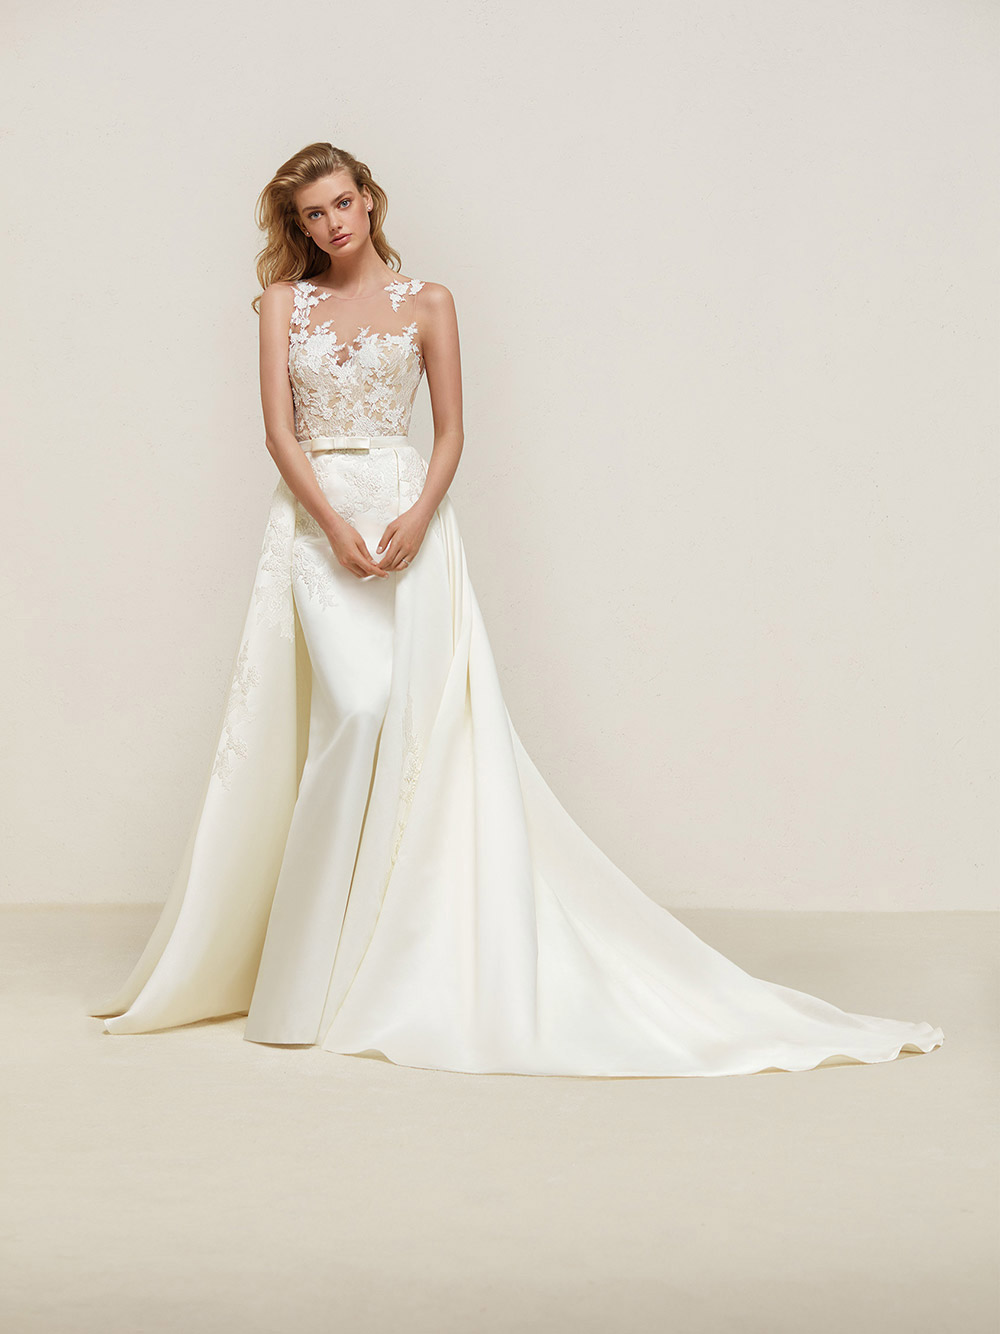 Dranoe - Pronovias 2018 Bridal Collection. www.theweddingnotebook.com